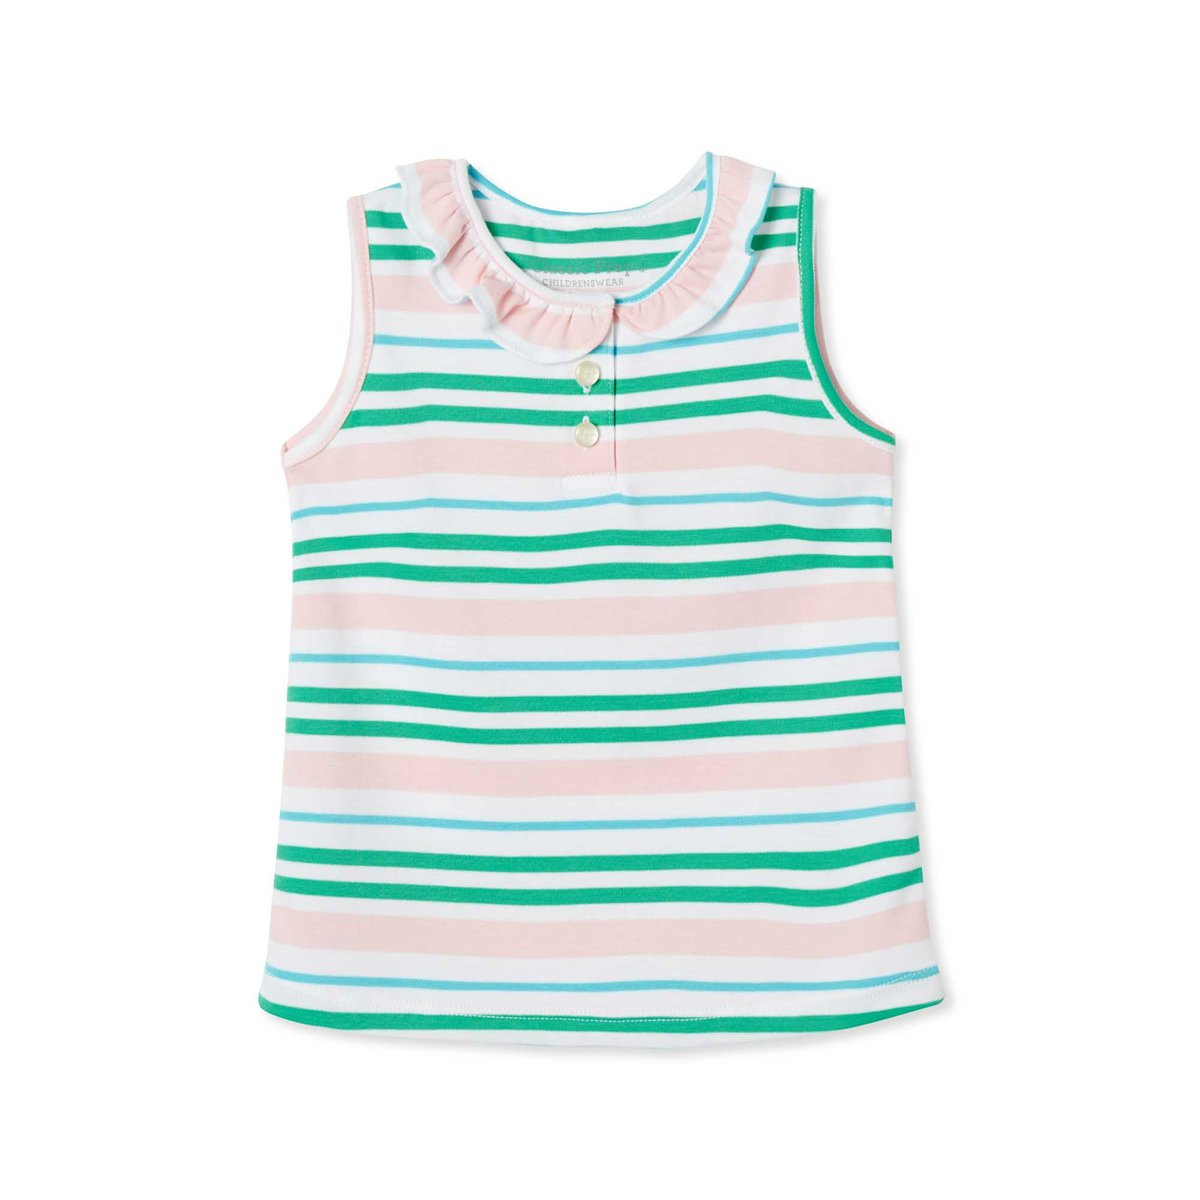 Zoe Sleeveless Polo - Lilly's Pink Multistripe Pima